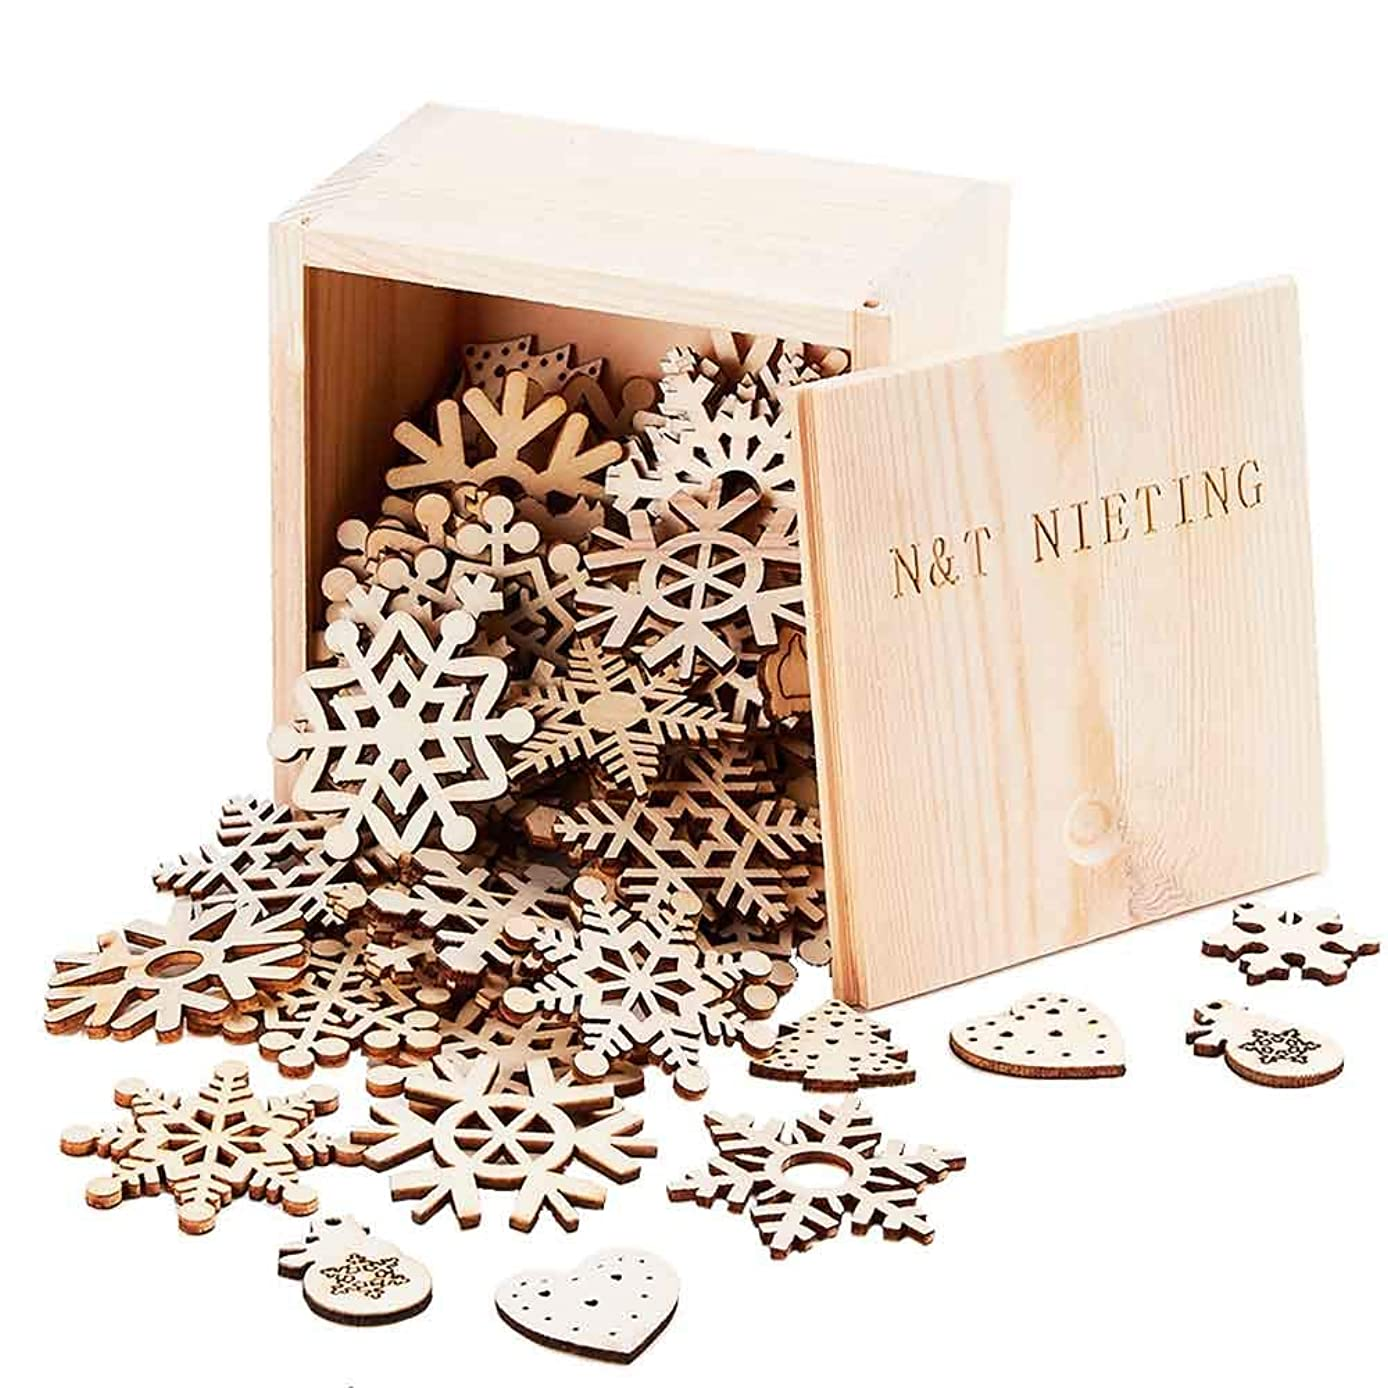 N&T NIETING 50pcs Snowflake + 50pcs DIY Unfinished Wooden Cutouts Christmas Ornaments for Kids Tree Decoration Christmas Craft Decoration with Gift Box